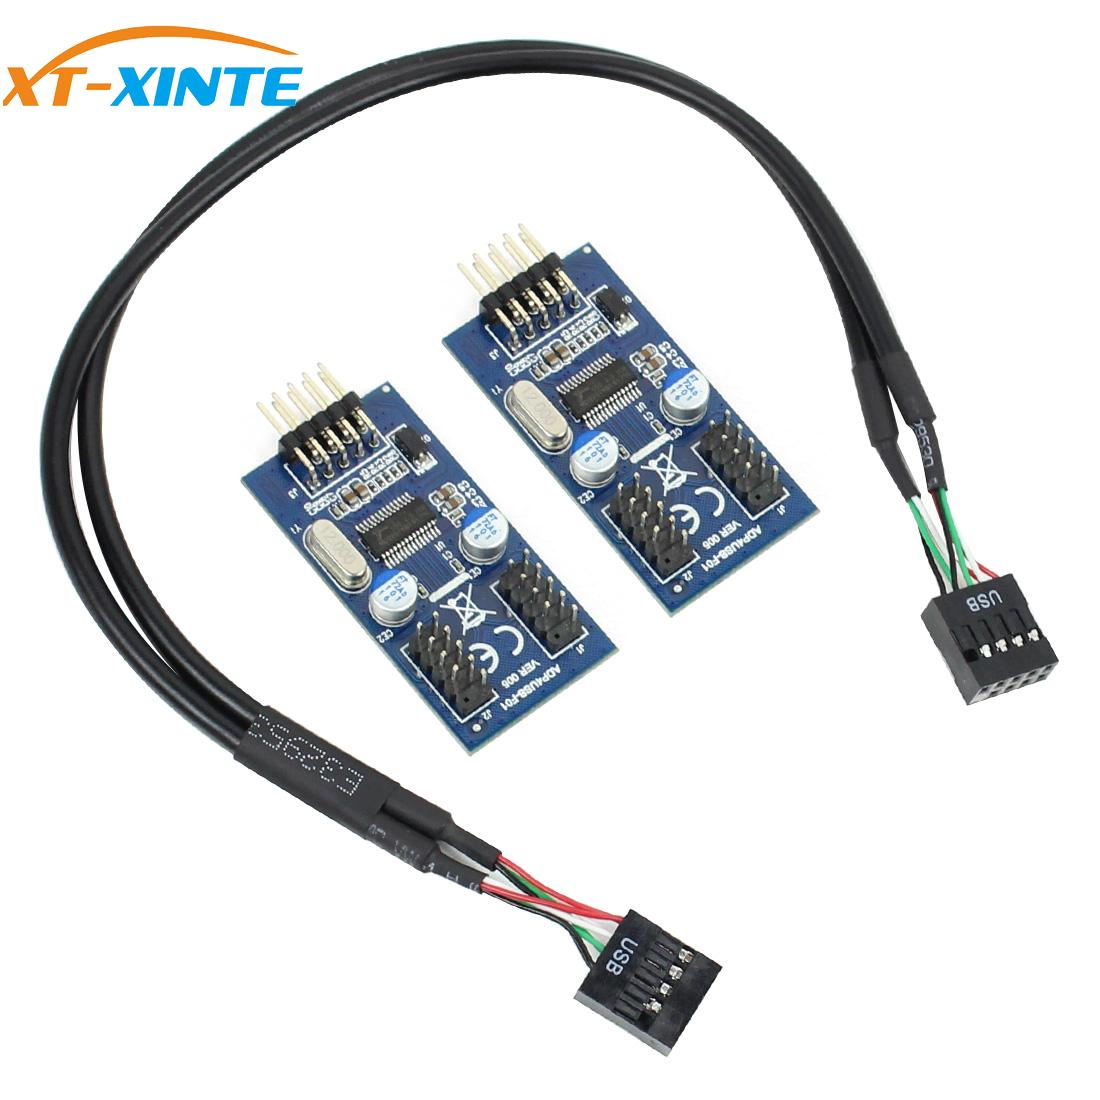 Motherboard USB 2.0 9PIN Header Multiplier Splitter 9 Pin 1 To 2 Port HUB Extension Cable 30cm/60cm Connector Adapter